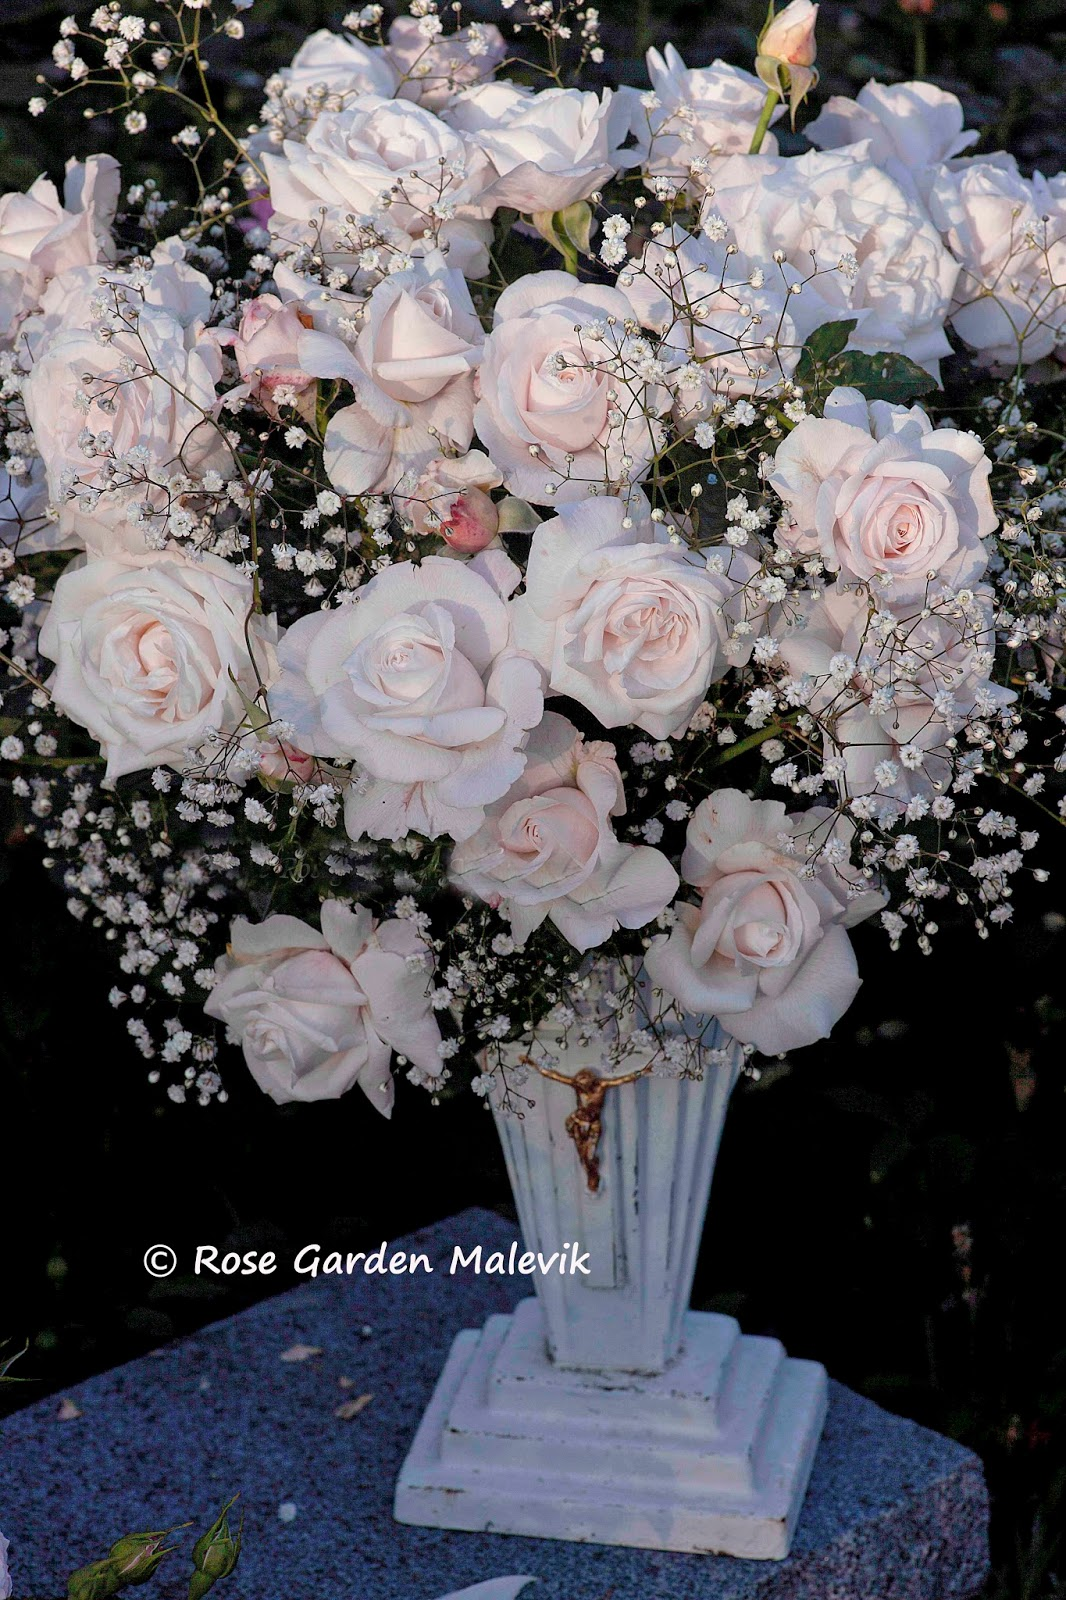 Rose garden malevik: saturday show off ~ bloggparty